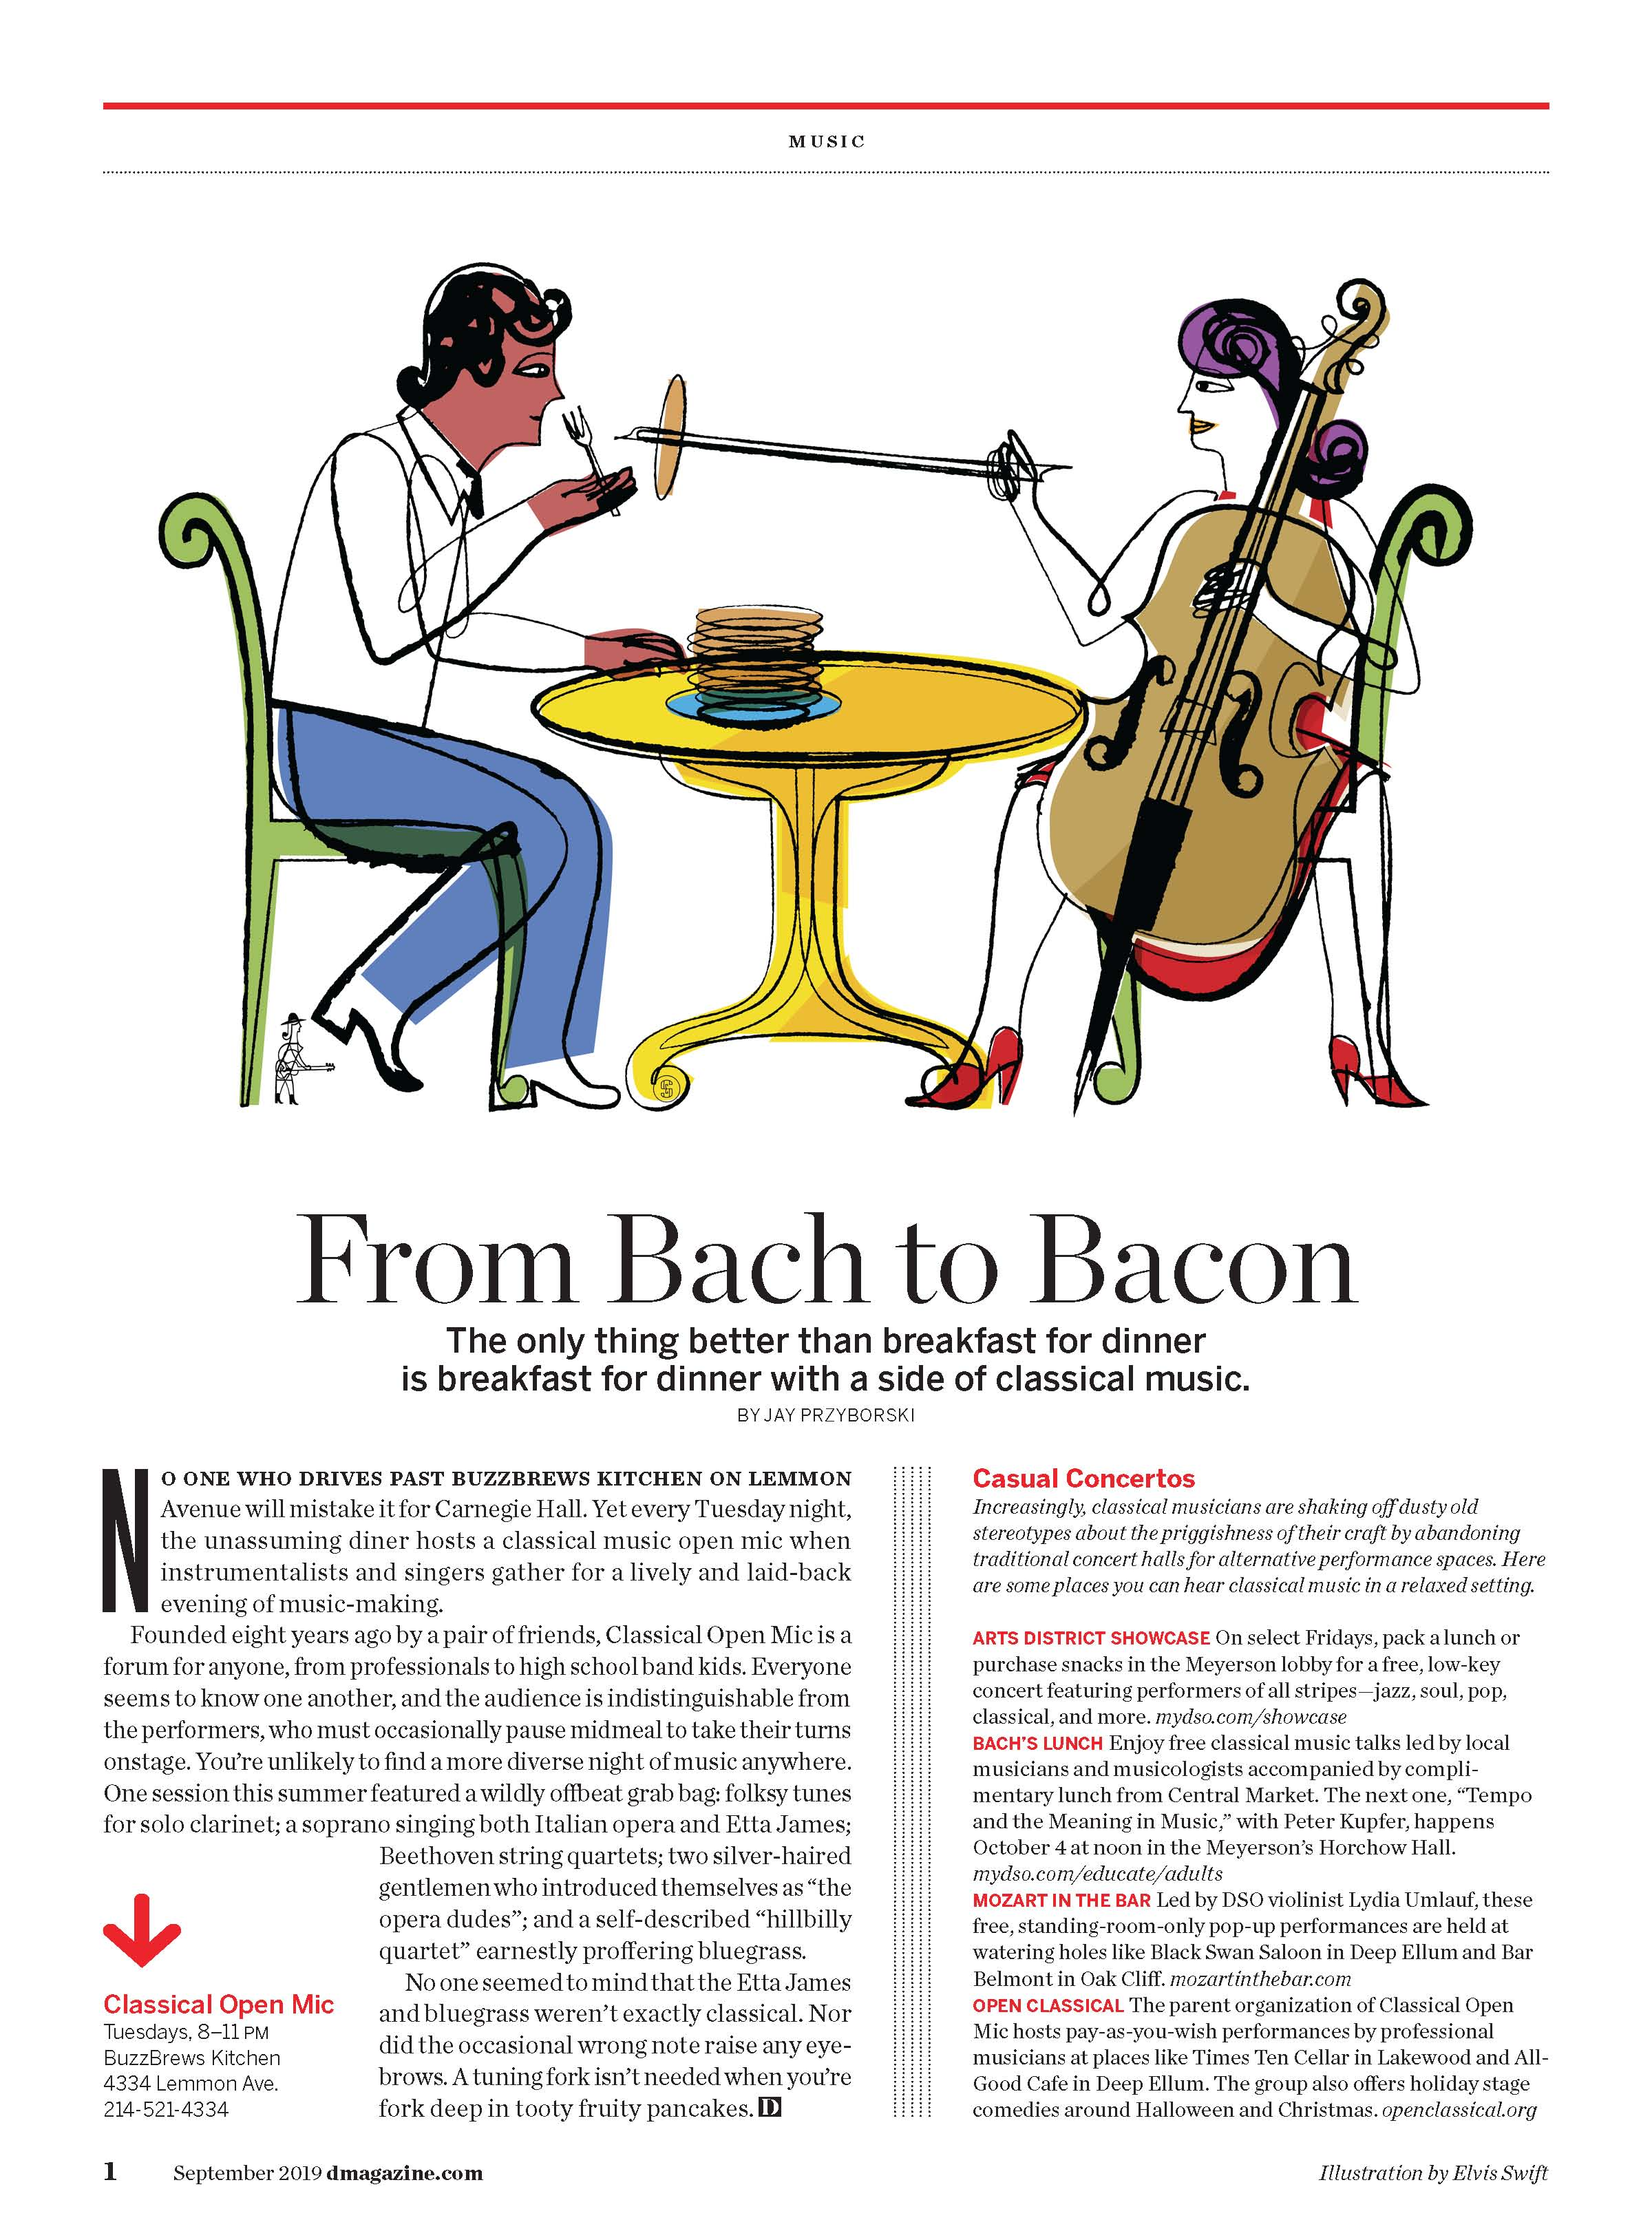 Theispot com - Elvis Swift Illustrates Bach with a Side of Bacon